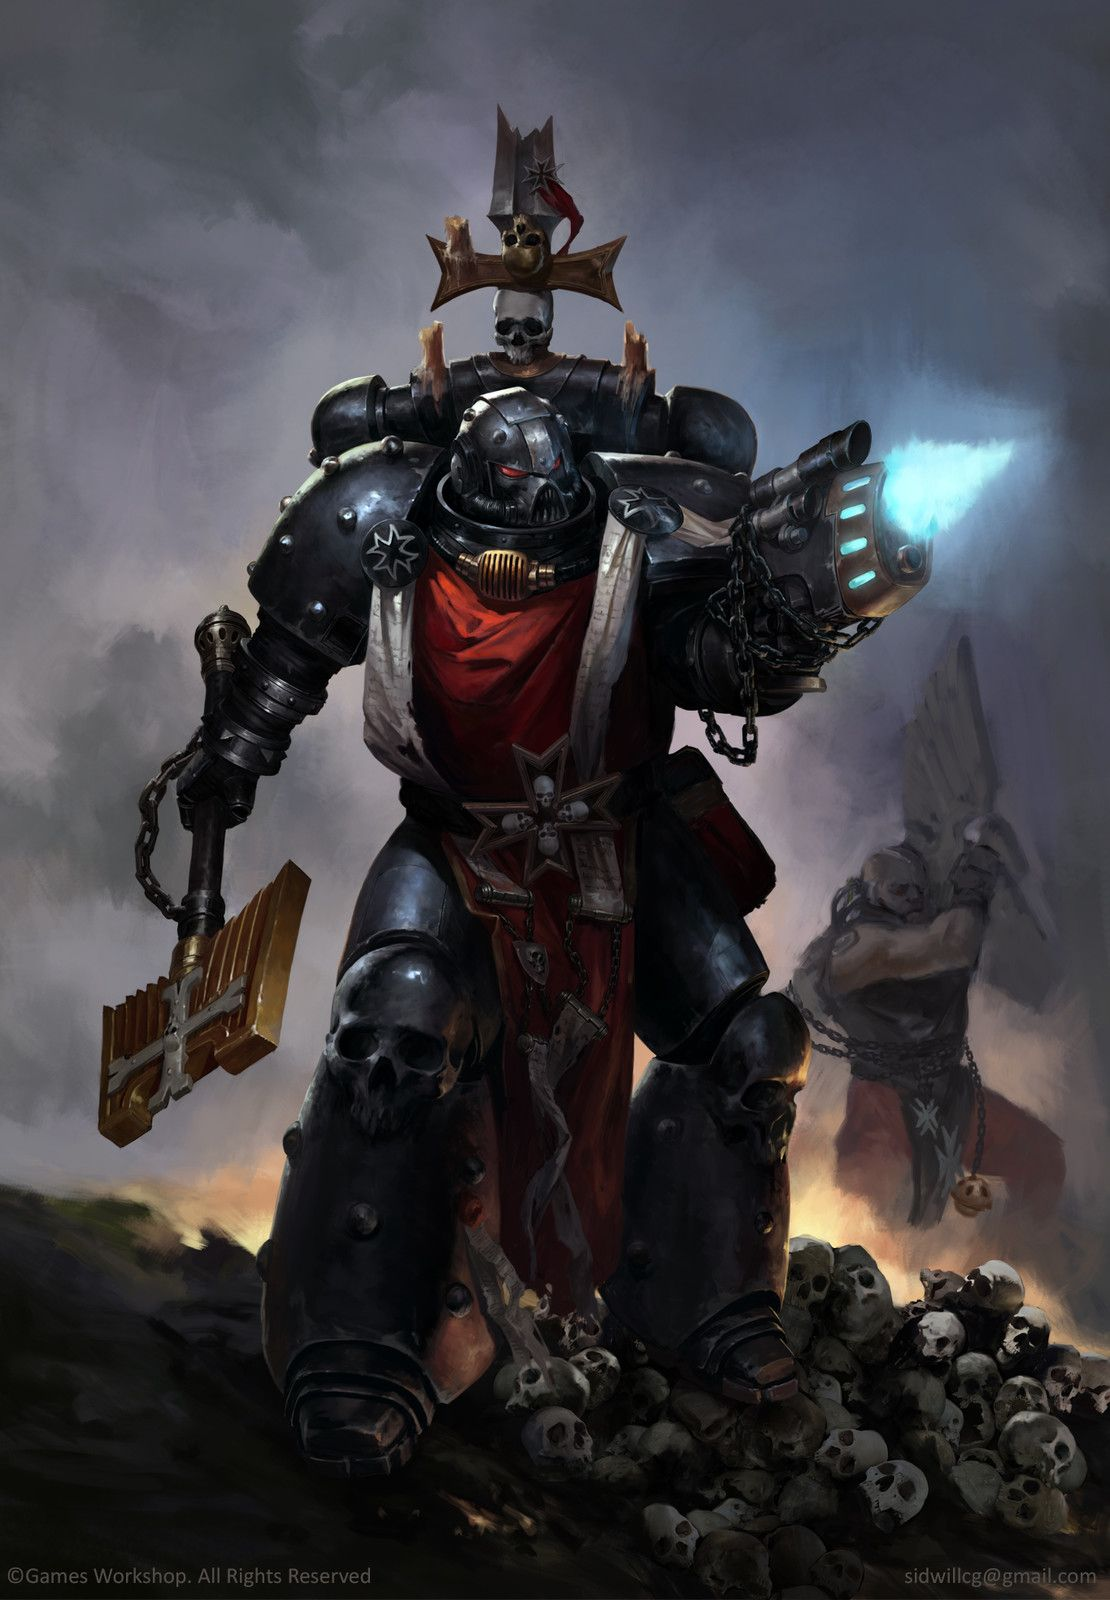 Pin By Charles Ohley On 40k Space Marines Warhammer Art